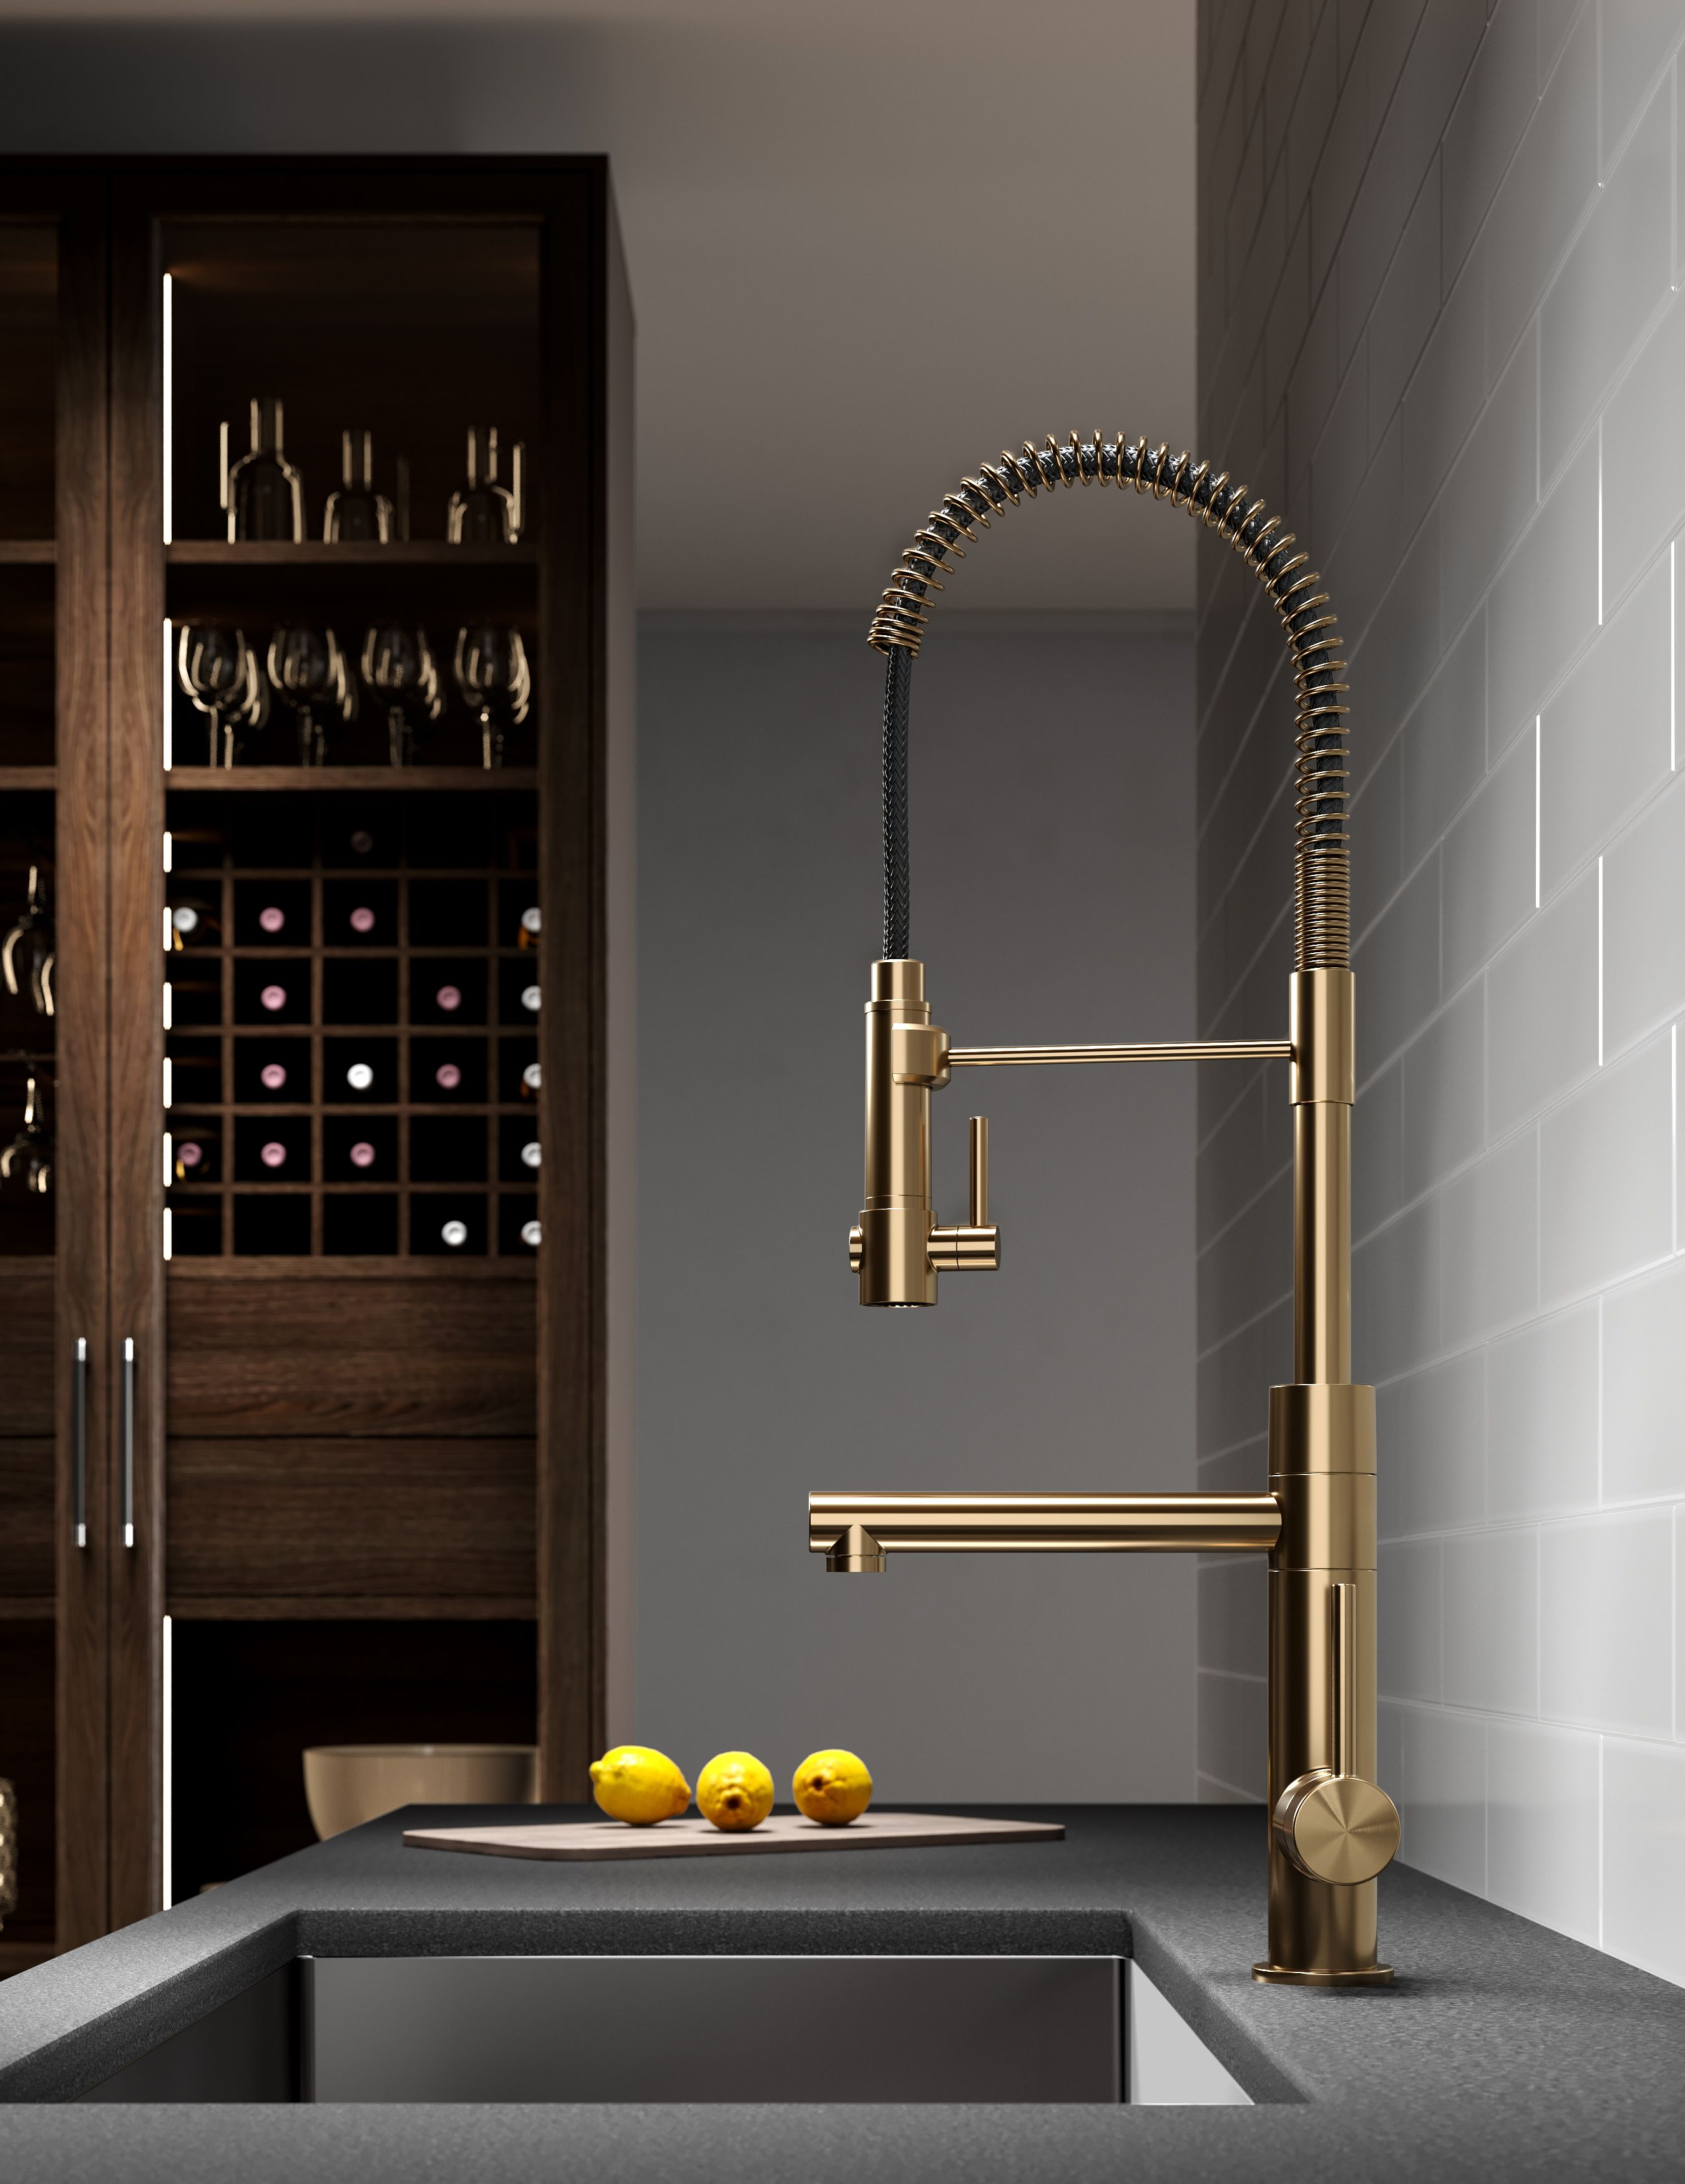 A Commercial Style Kitchen Faucet That Exemplifies Modern